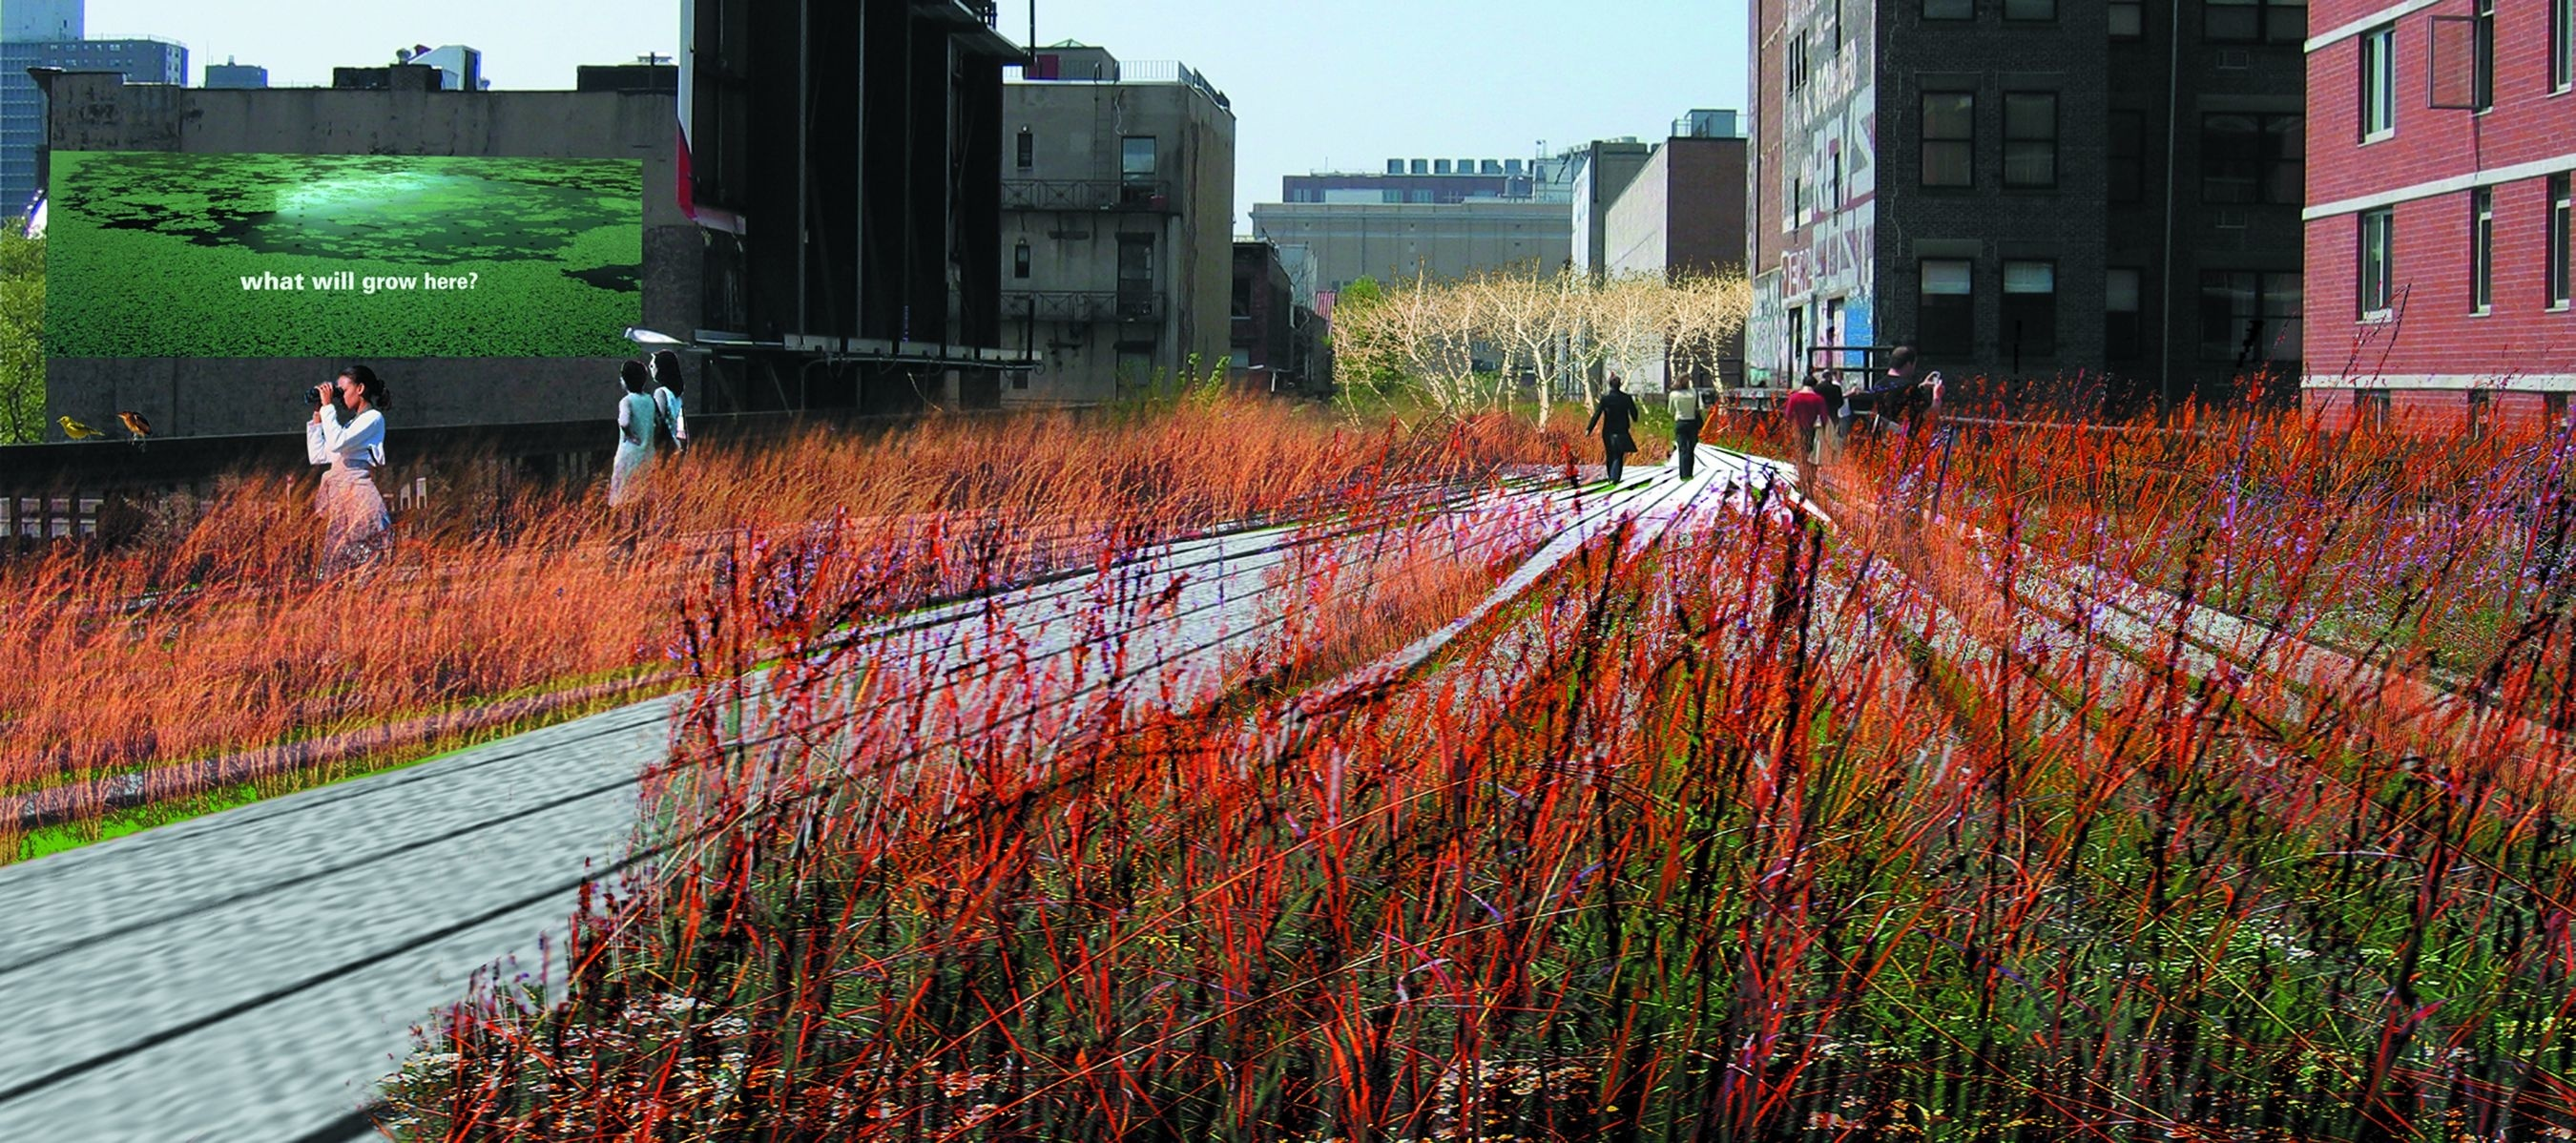 Field Operations and Diller Scofidio + Renfro. The High Line, New York, New York. 2004–05. Perspective of grasslands and planking system, 2004